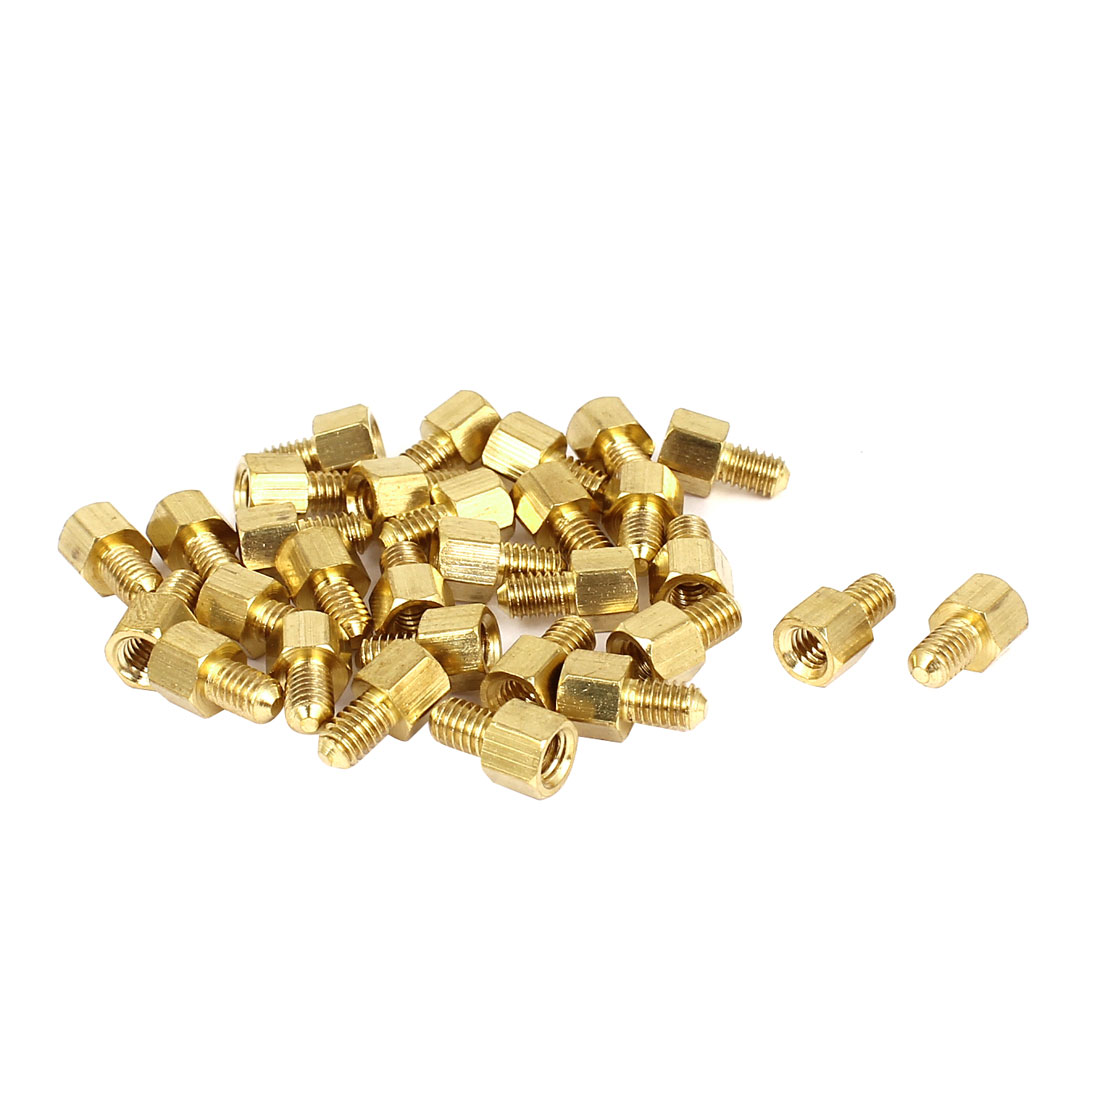 30 Pcs M4 5mm+6mm Male Female Brass Screw PCB Motherboard Standoffs Hex Spacers